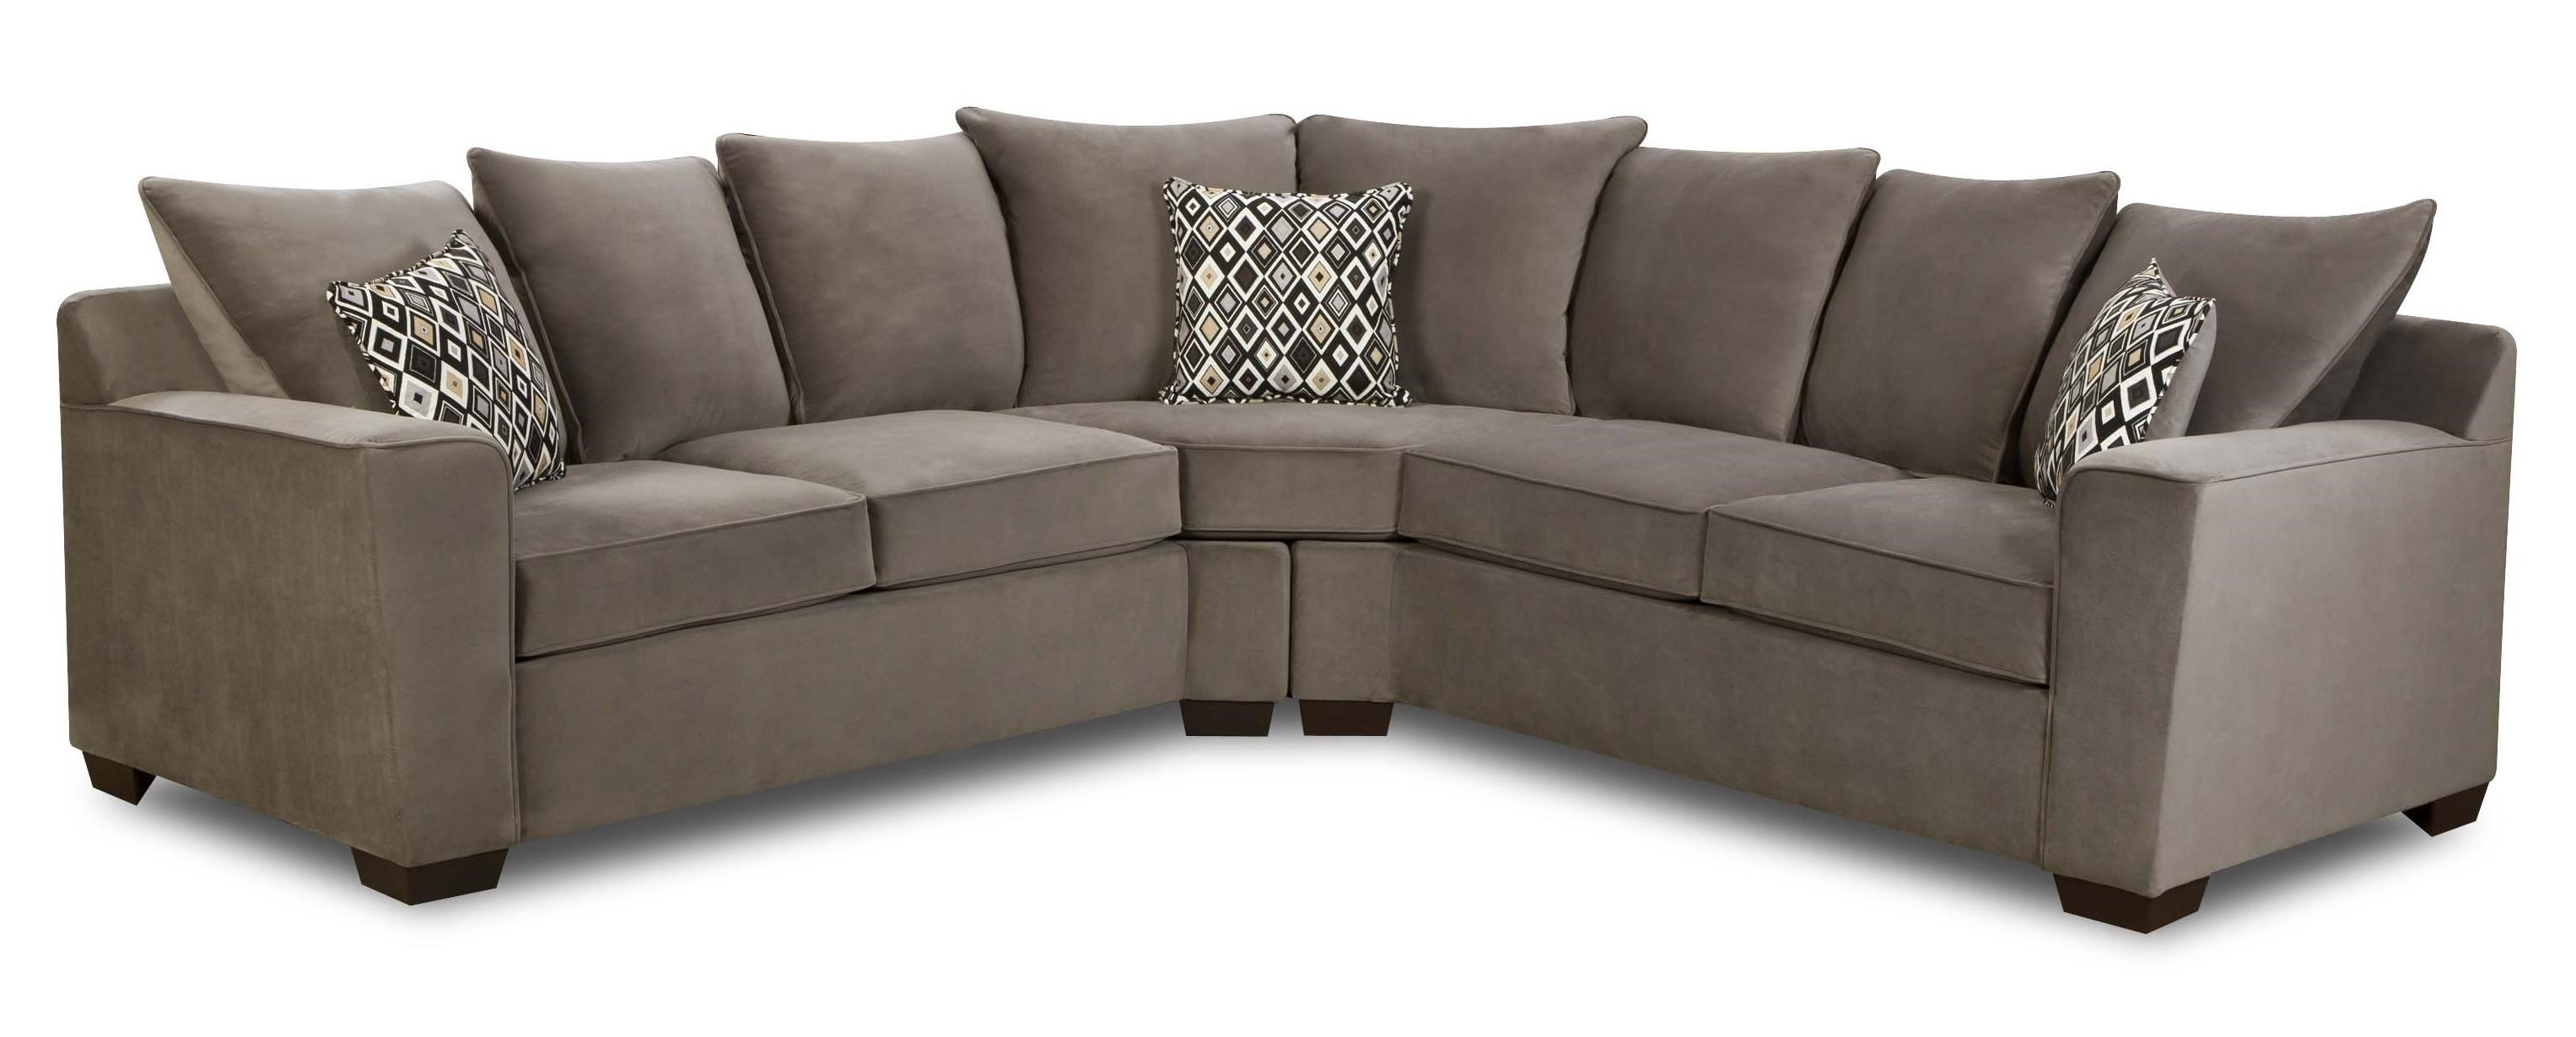 United Furniture Industries 9070 Transitional 2 Piece Sectional Sofa With  Scatter Pillow Back